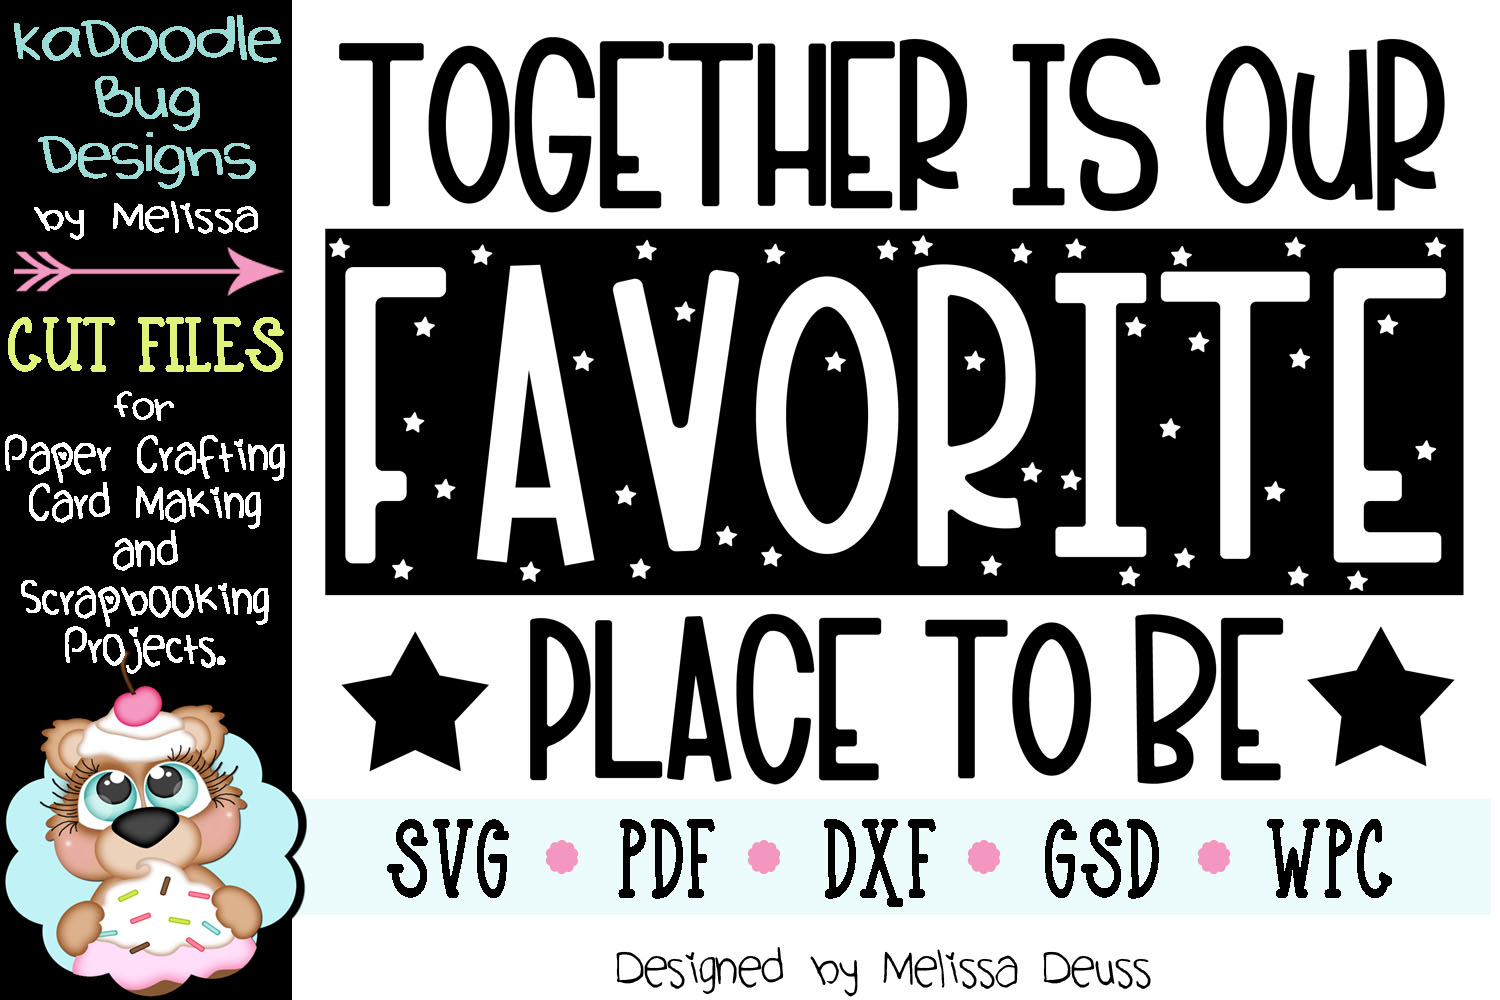 Together Is Our Favorite Place To Be Cut File - SVG PDF DXF example image 2